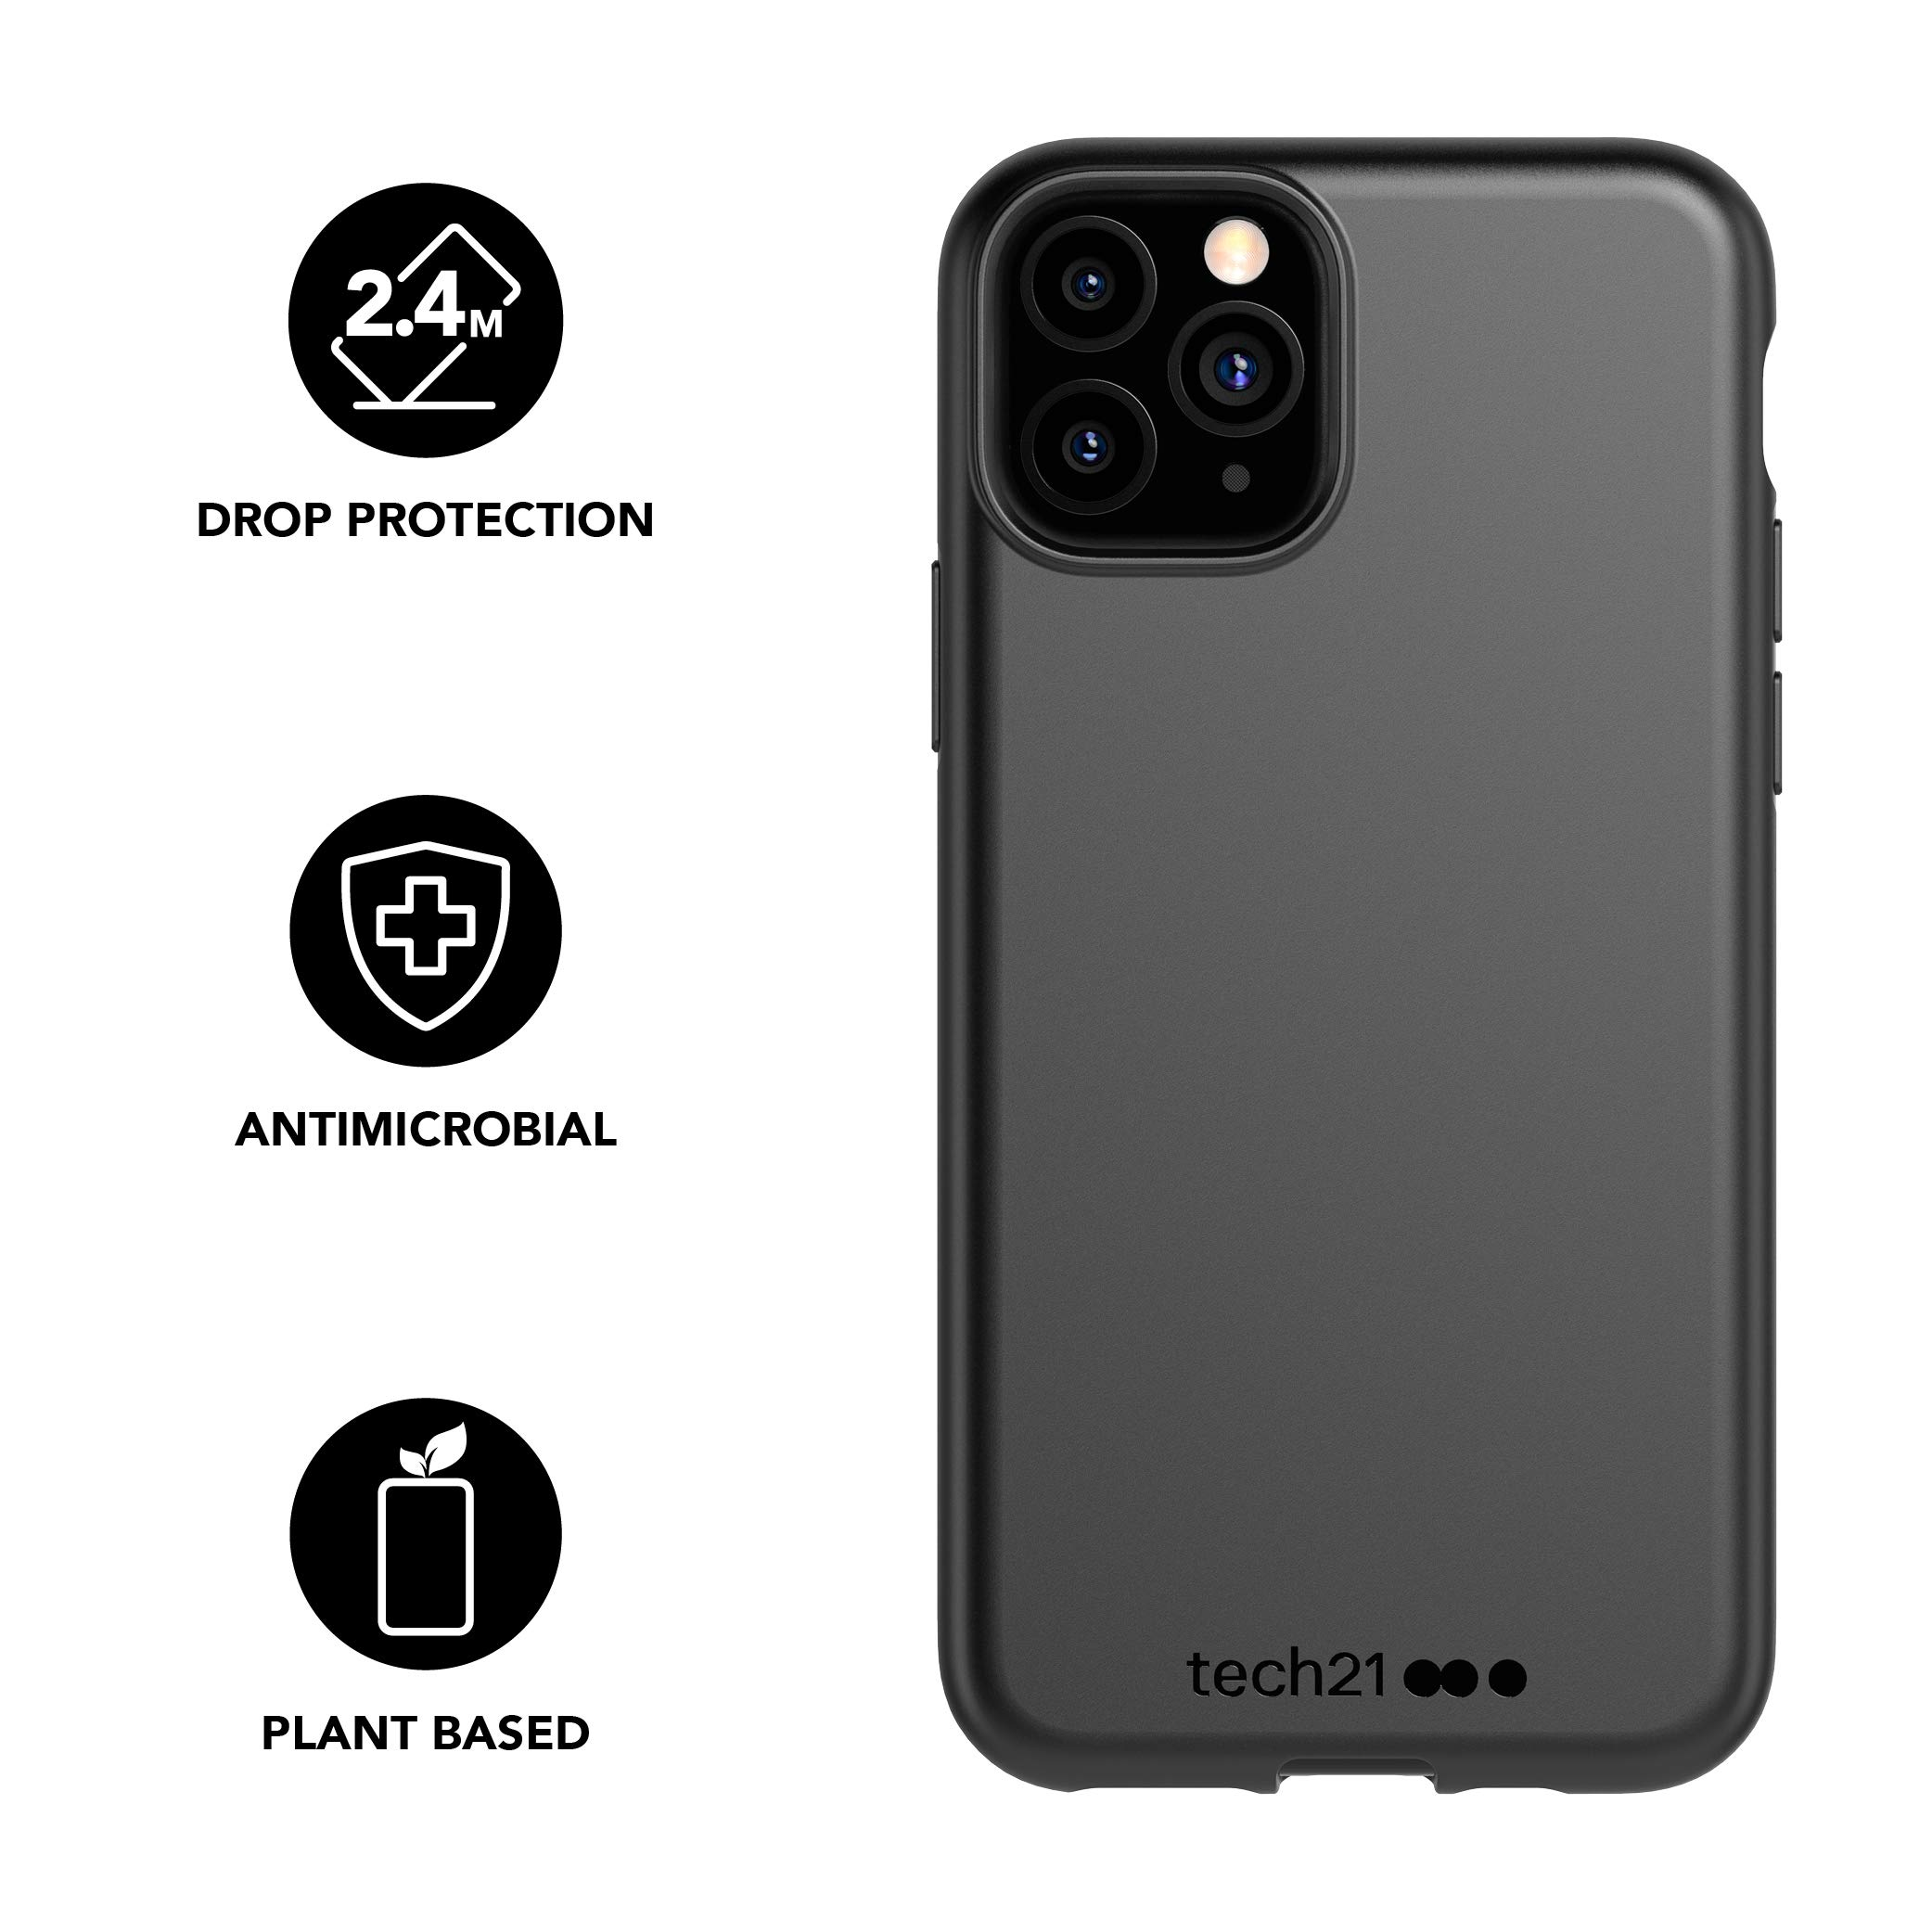 tech21 Studio Colour Mobile Phone Case - Compatible with iPhone 11 Pro - Slim Profile with Anti-Microbial Properties and Drop Protection, Black